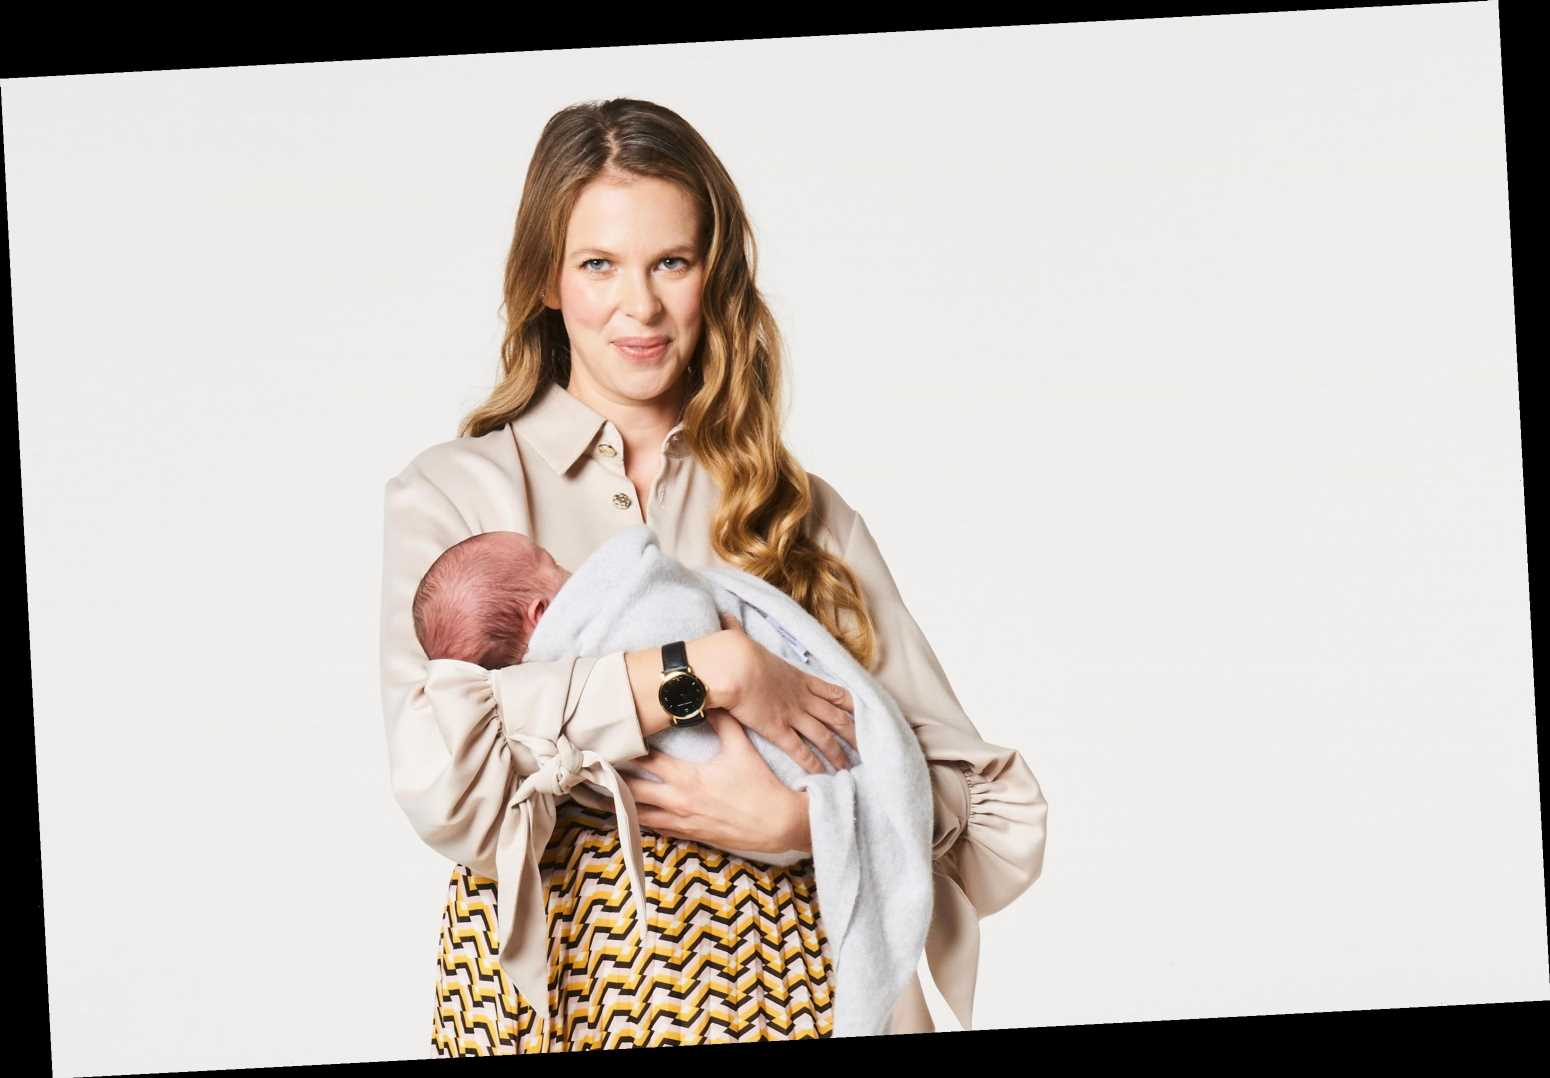 Breastfeeding should incite awe and compassion, not stares and accusations of inappropriateness